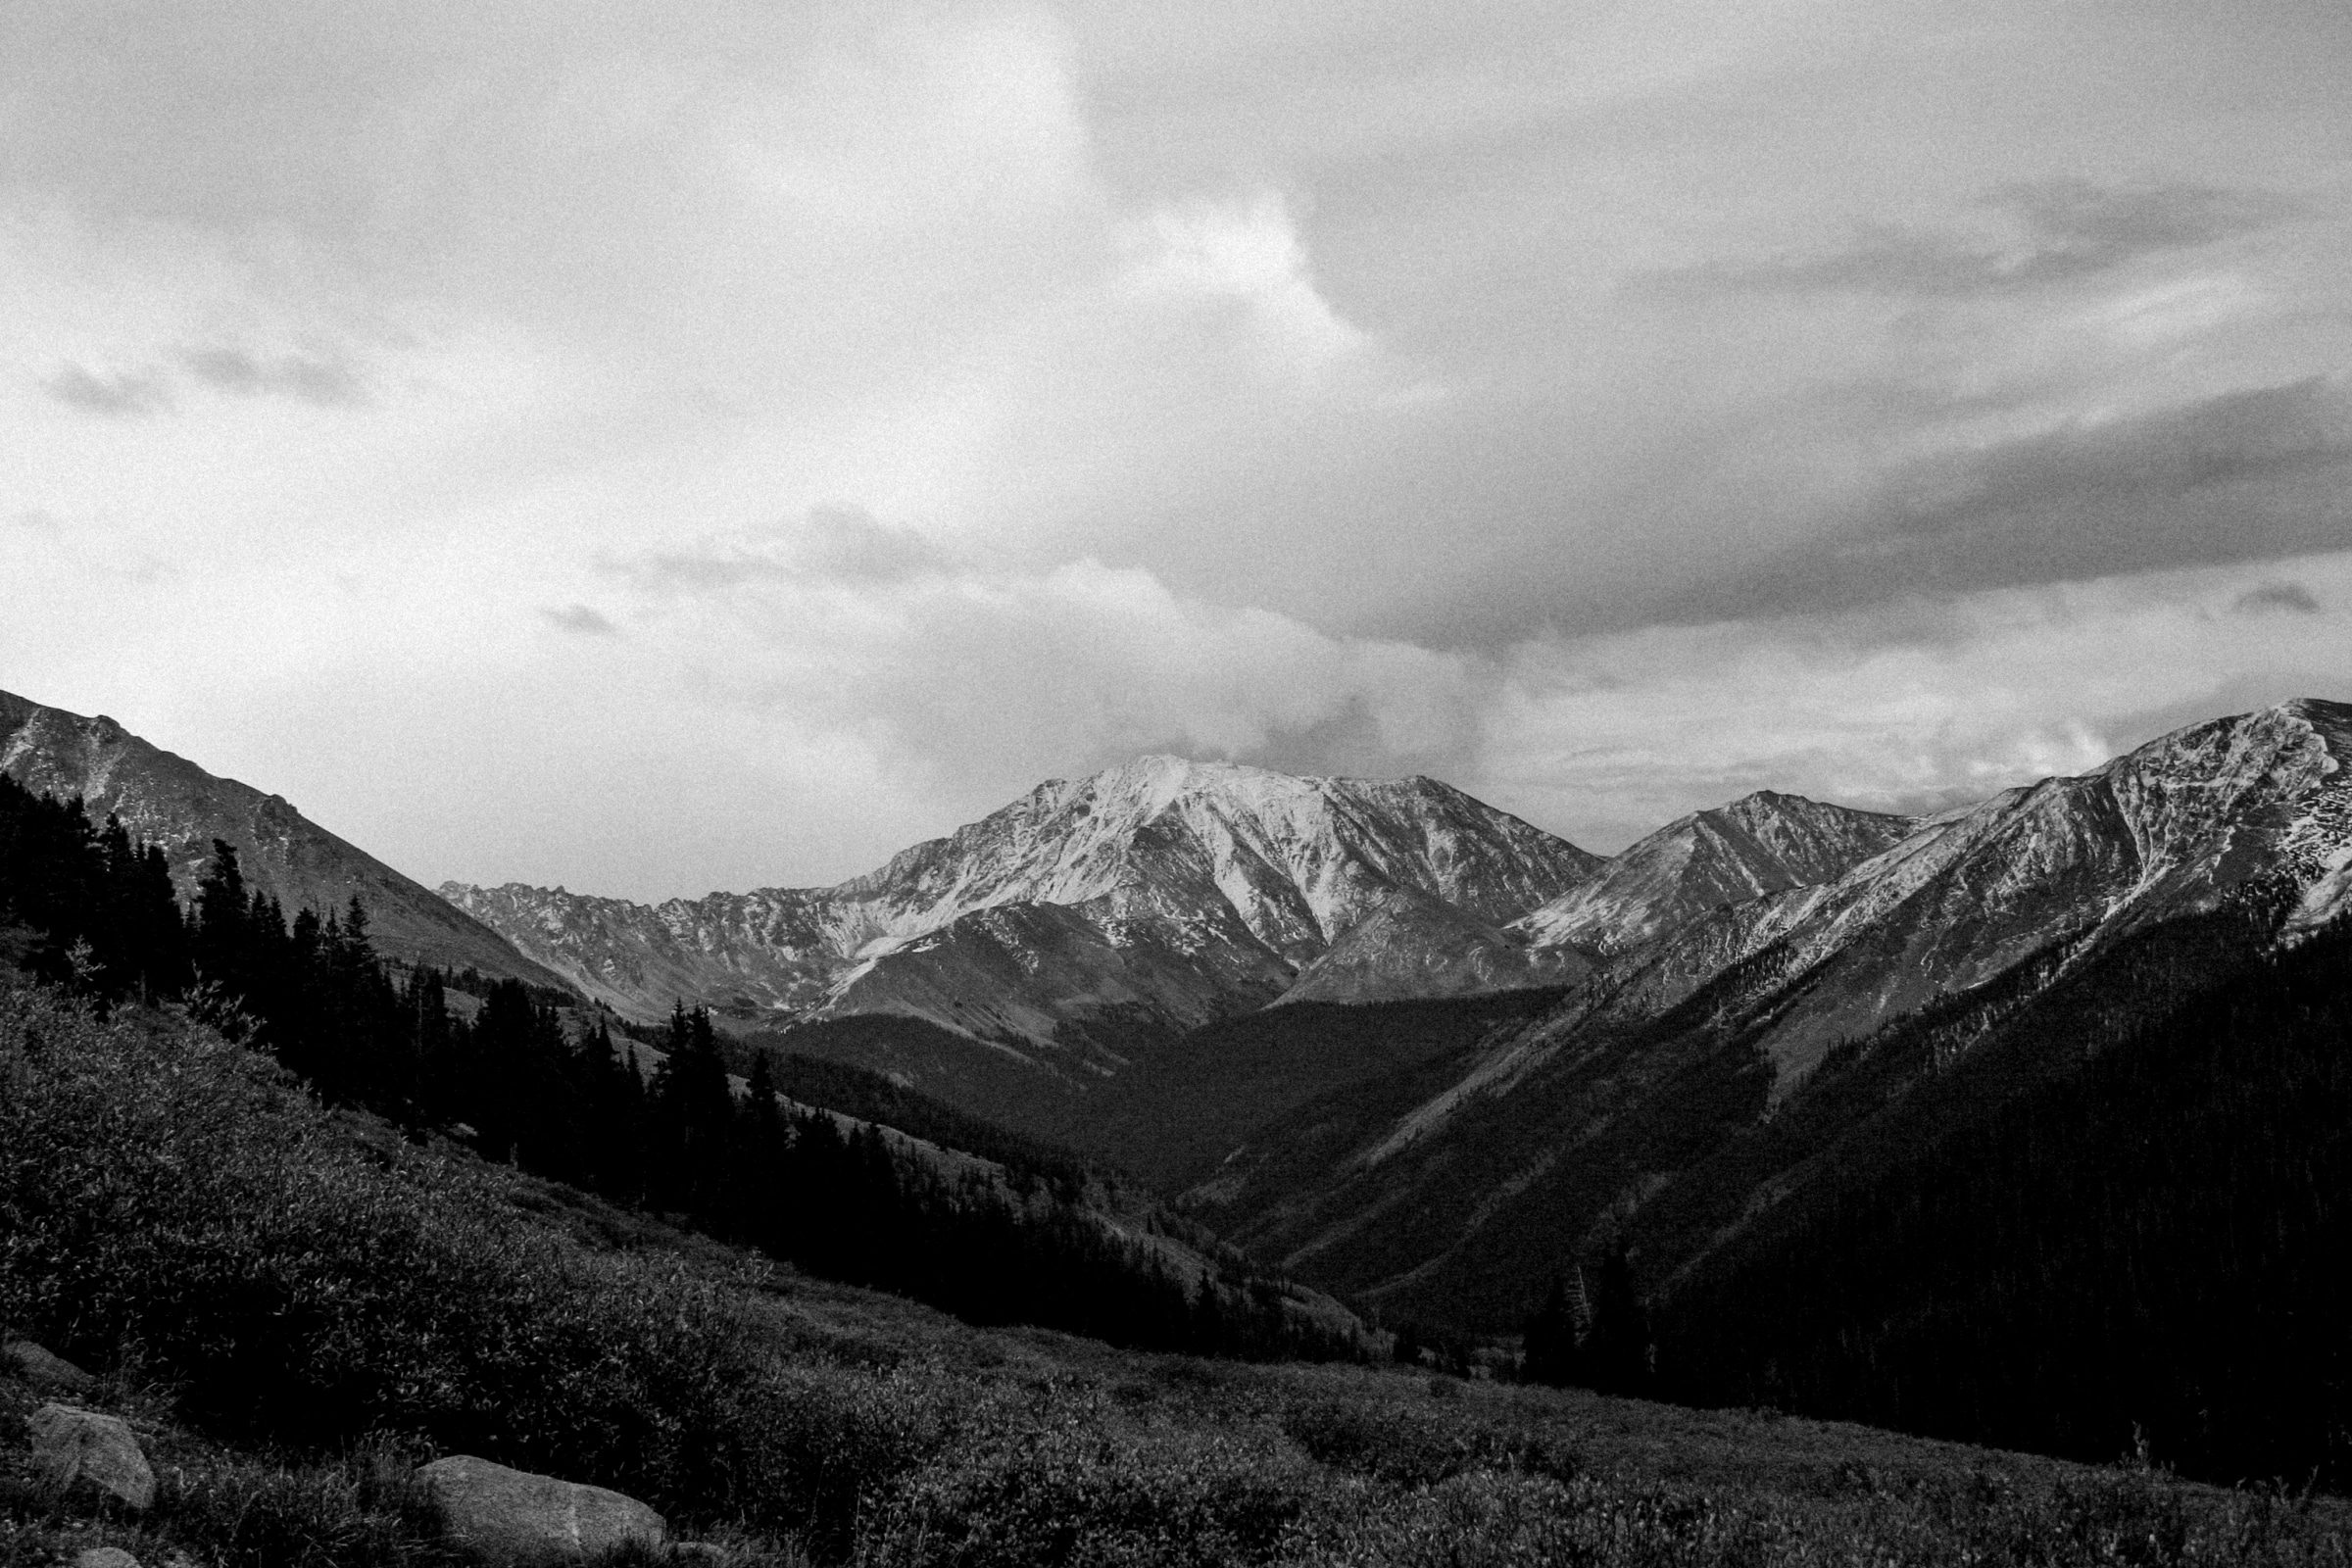 Independence-Pass-Colorado-black-and-white-fine-art-photography-by-Studio-L-photographer-Laura-Schneider-_8369